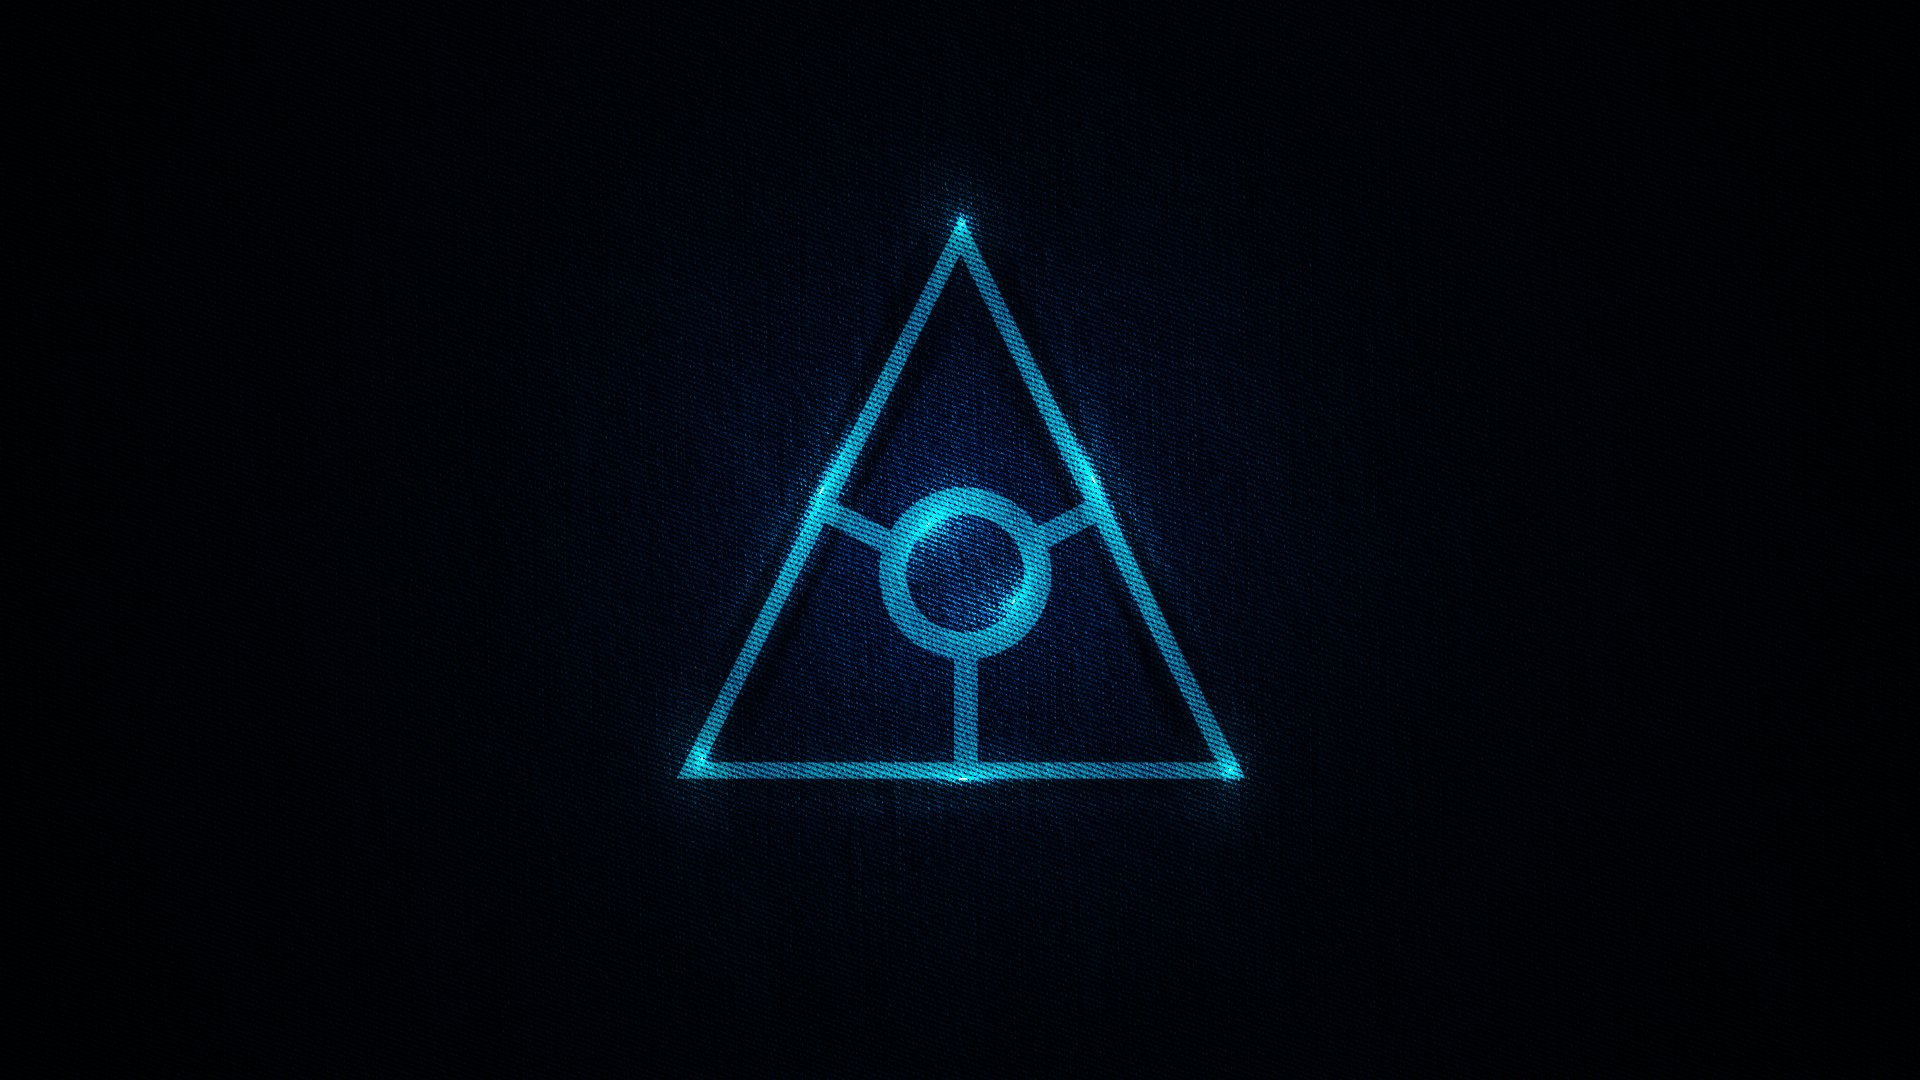 48+] Illuminati Wallpaper iPhone on